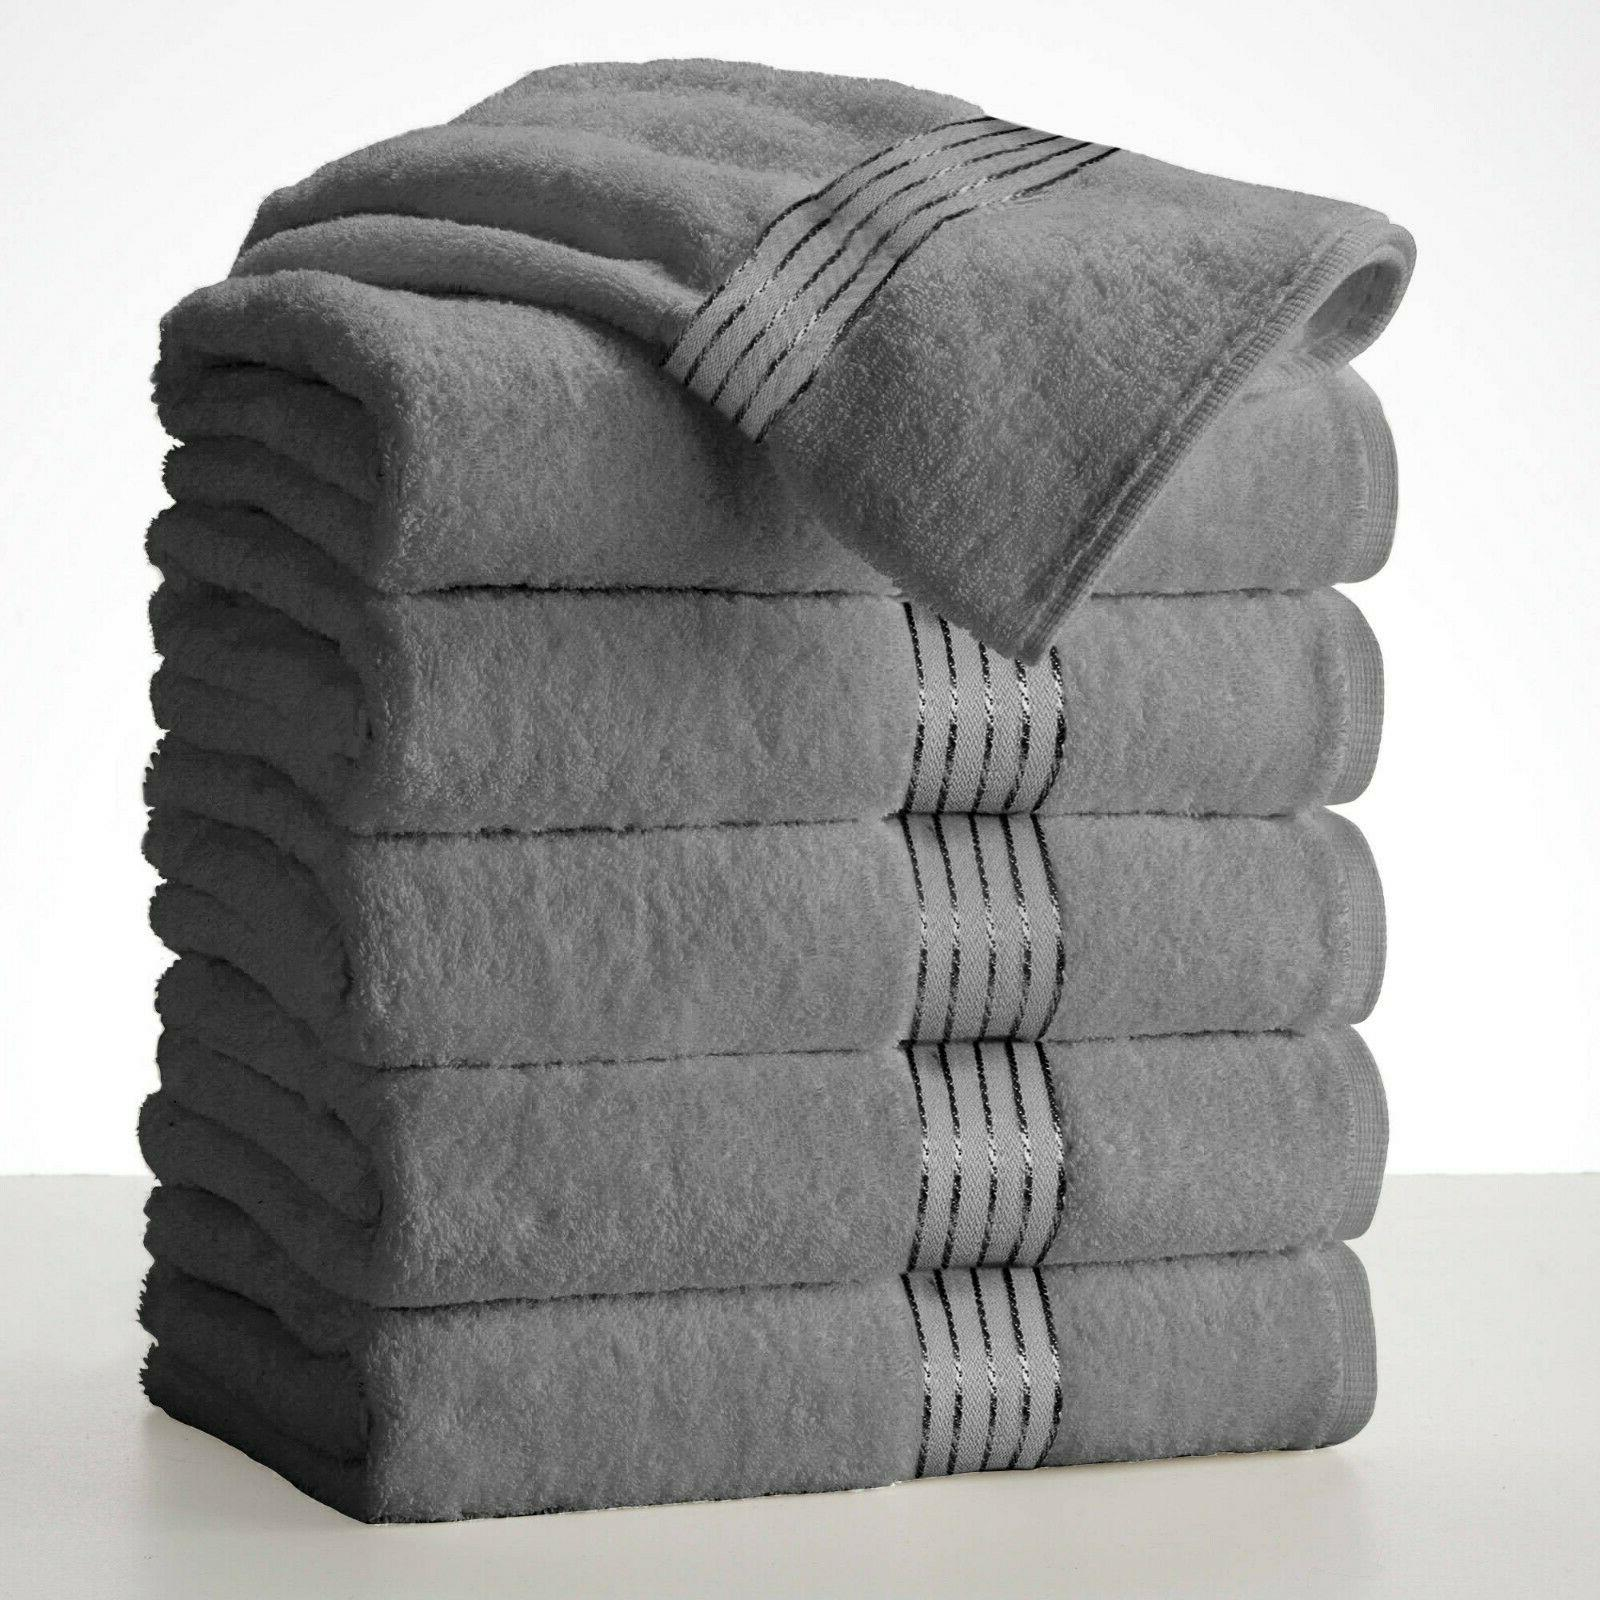 Silver Large Towels Packs Cotton Absorbent